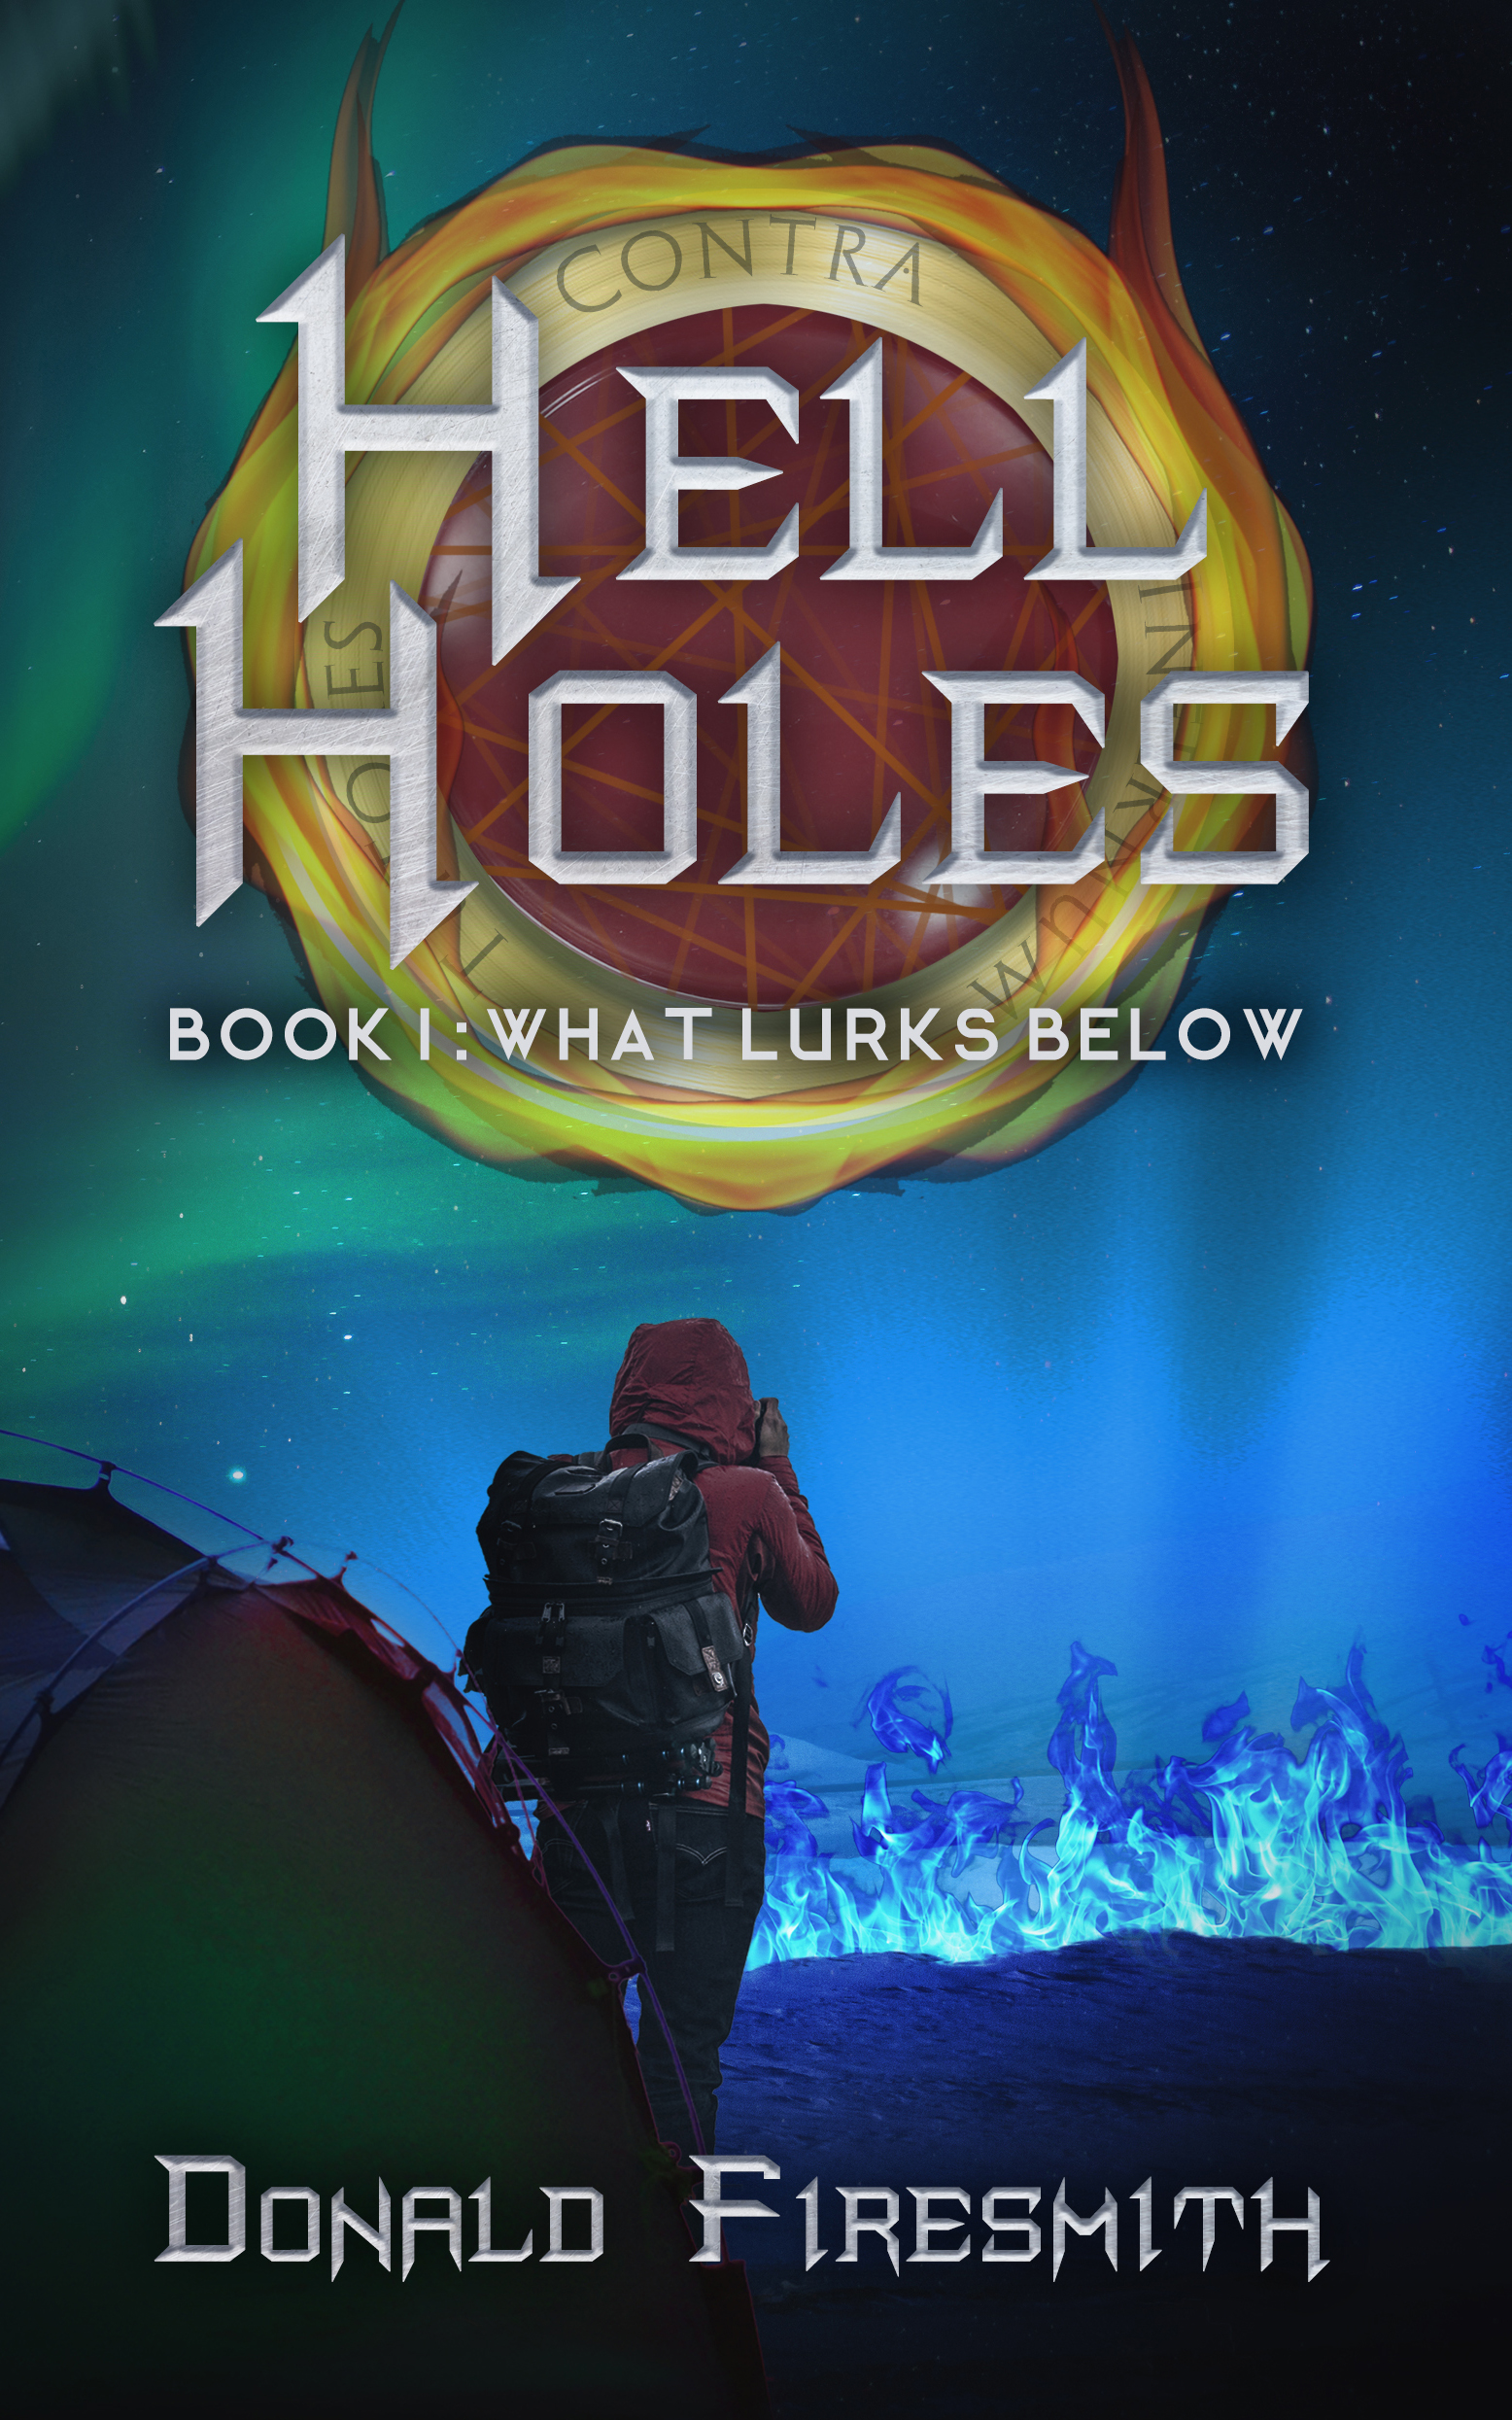 The Hell Holes Series by Donald Firesmith